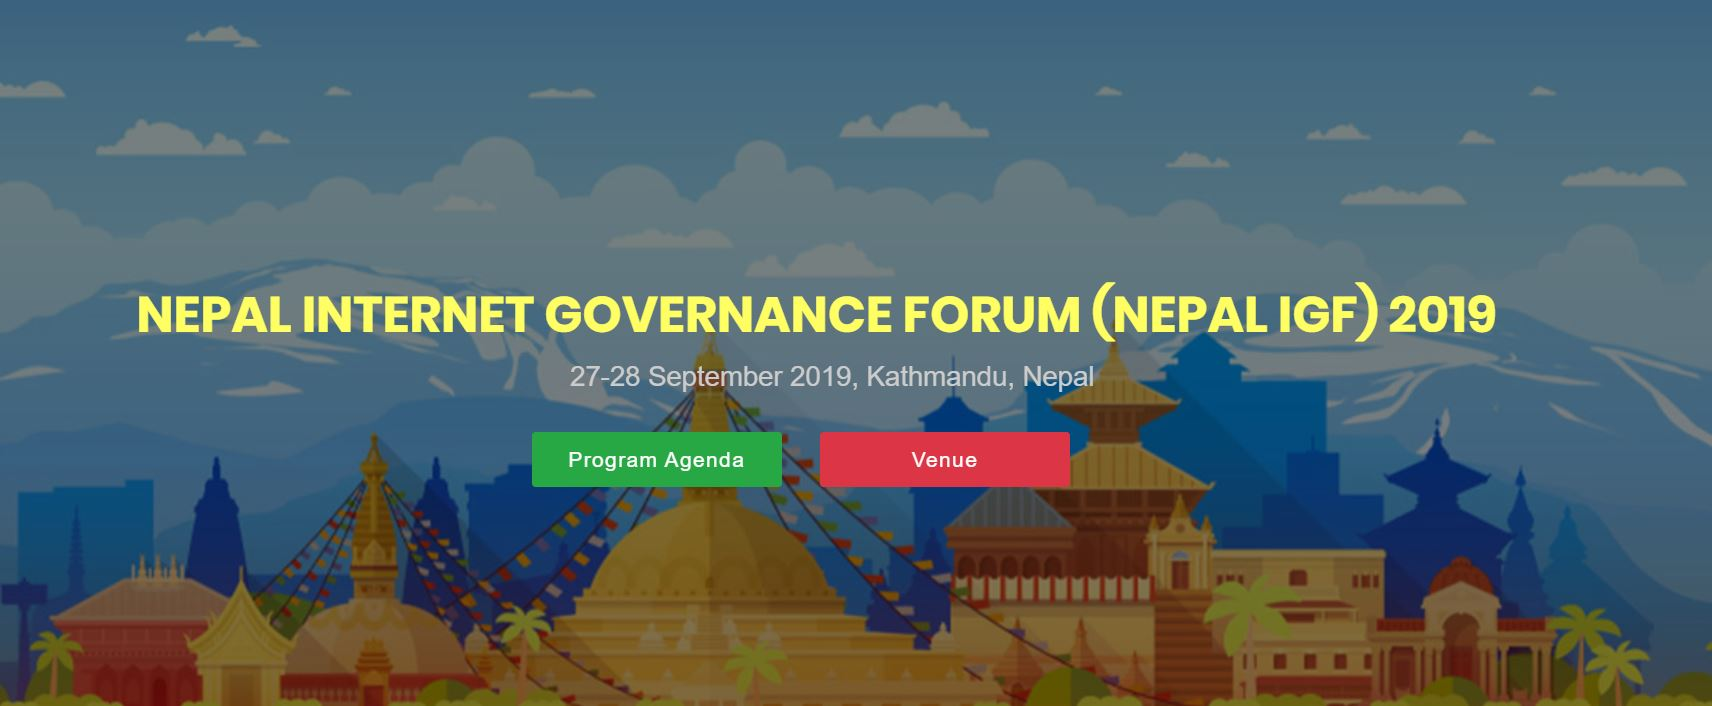 Nepal Internet Governance Forum